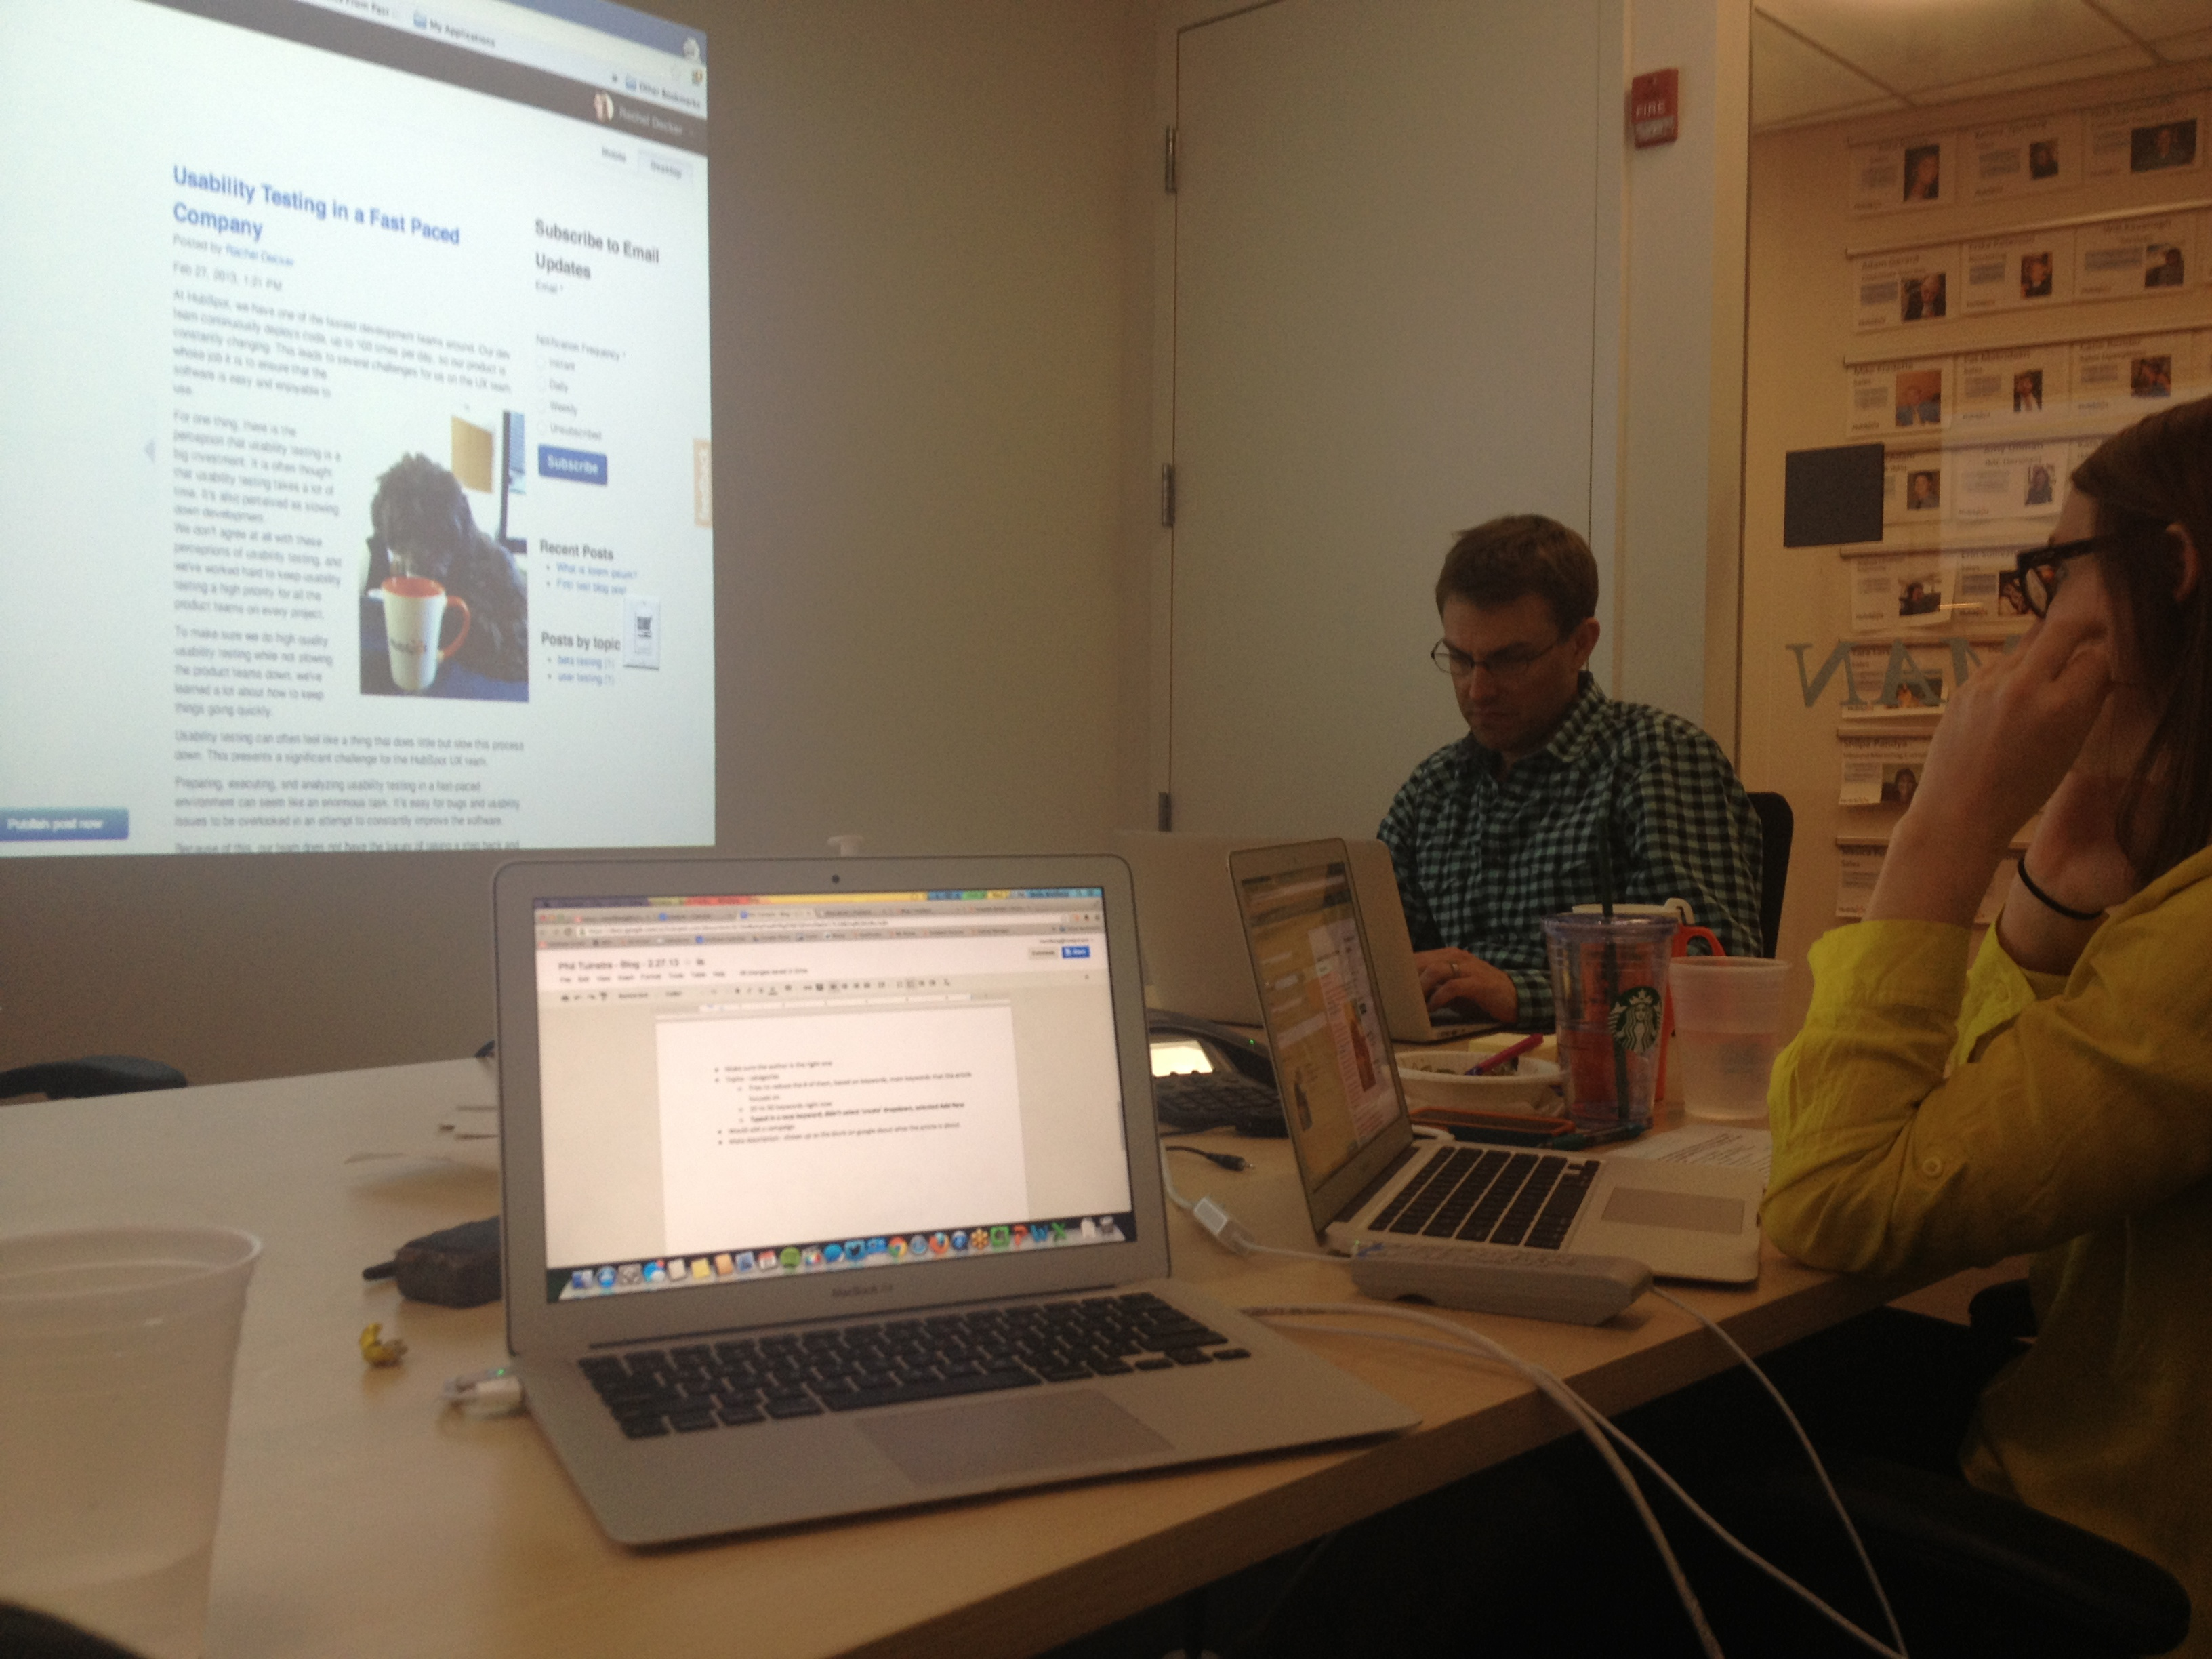 A usability testing session at HubSpot.